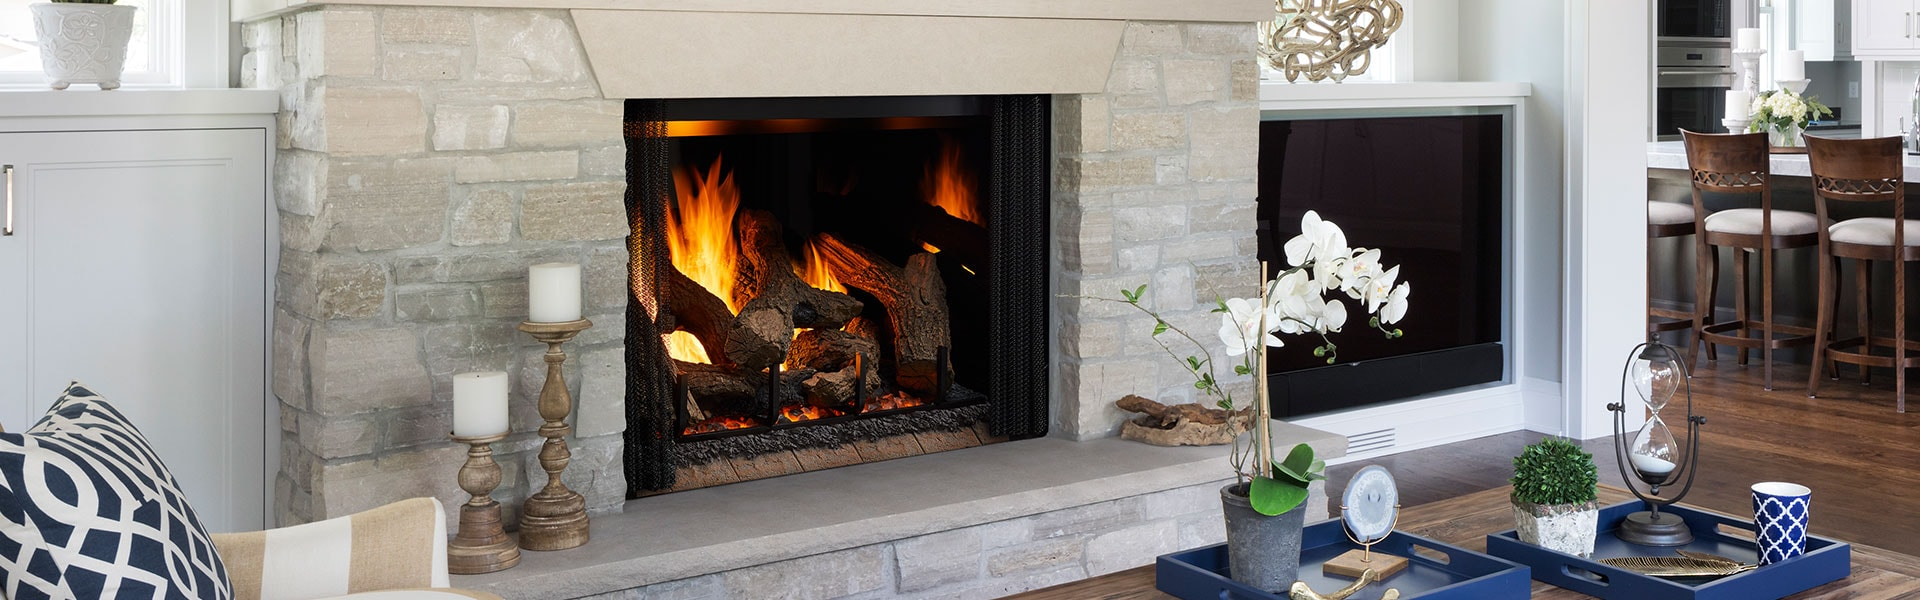 <p>Phoenix TrueView Gas Fireplace</p>